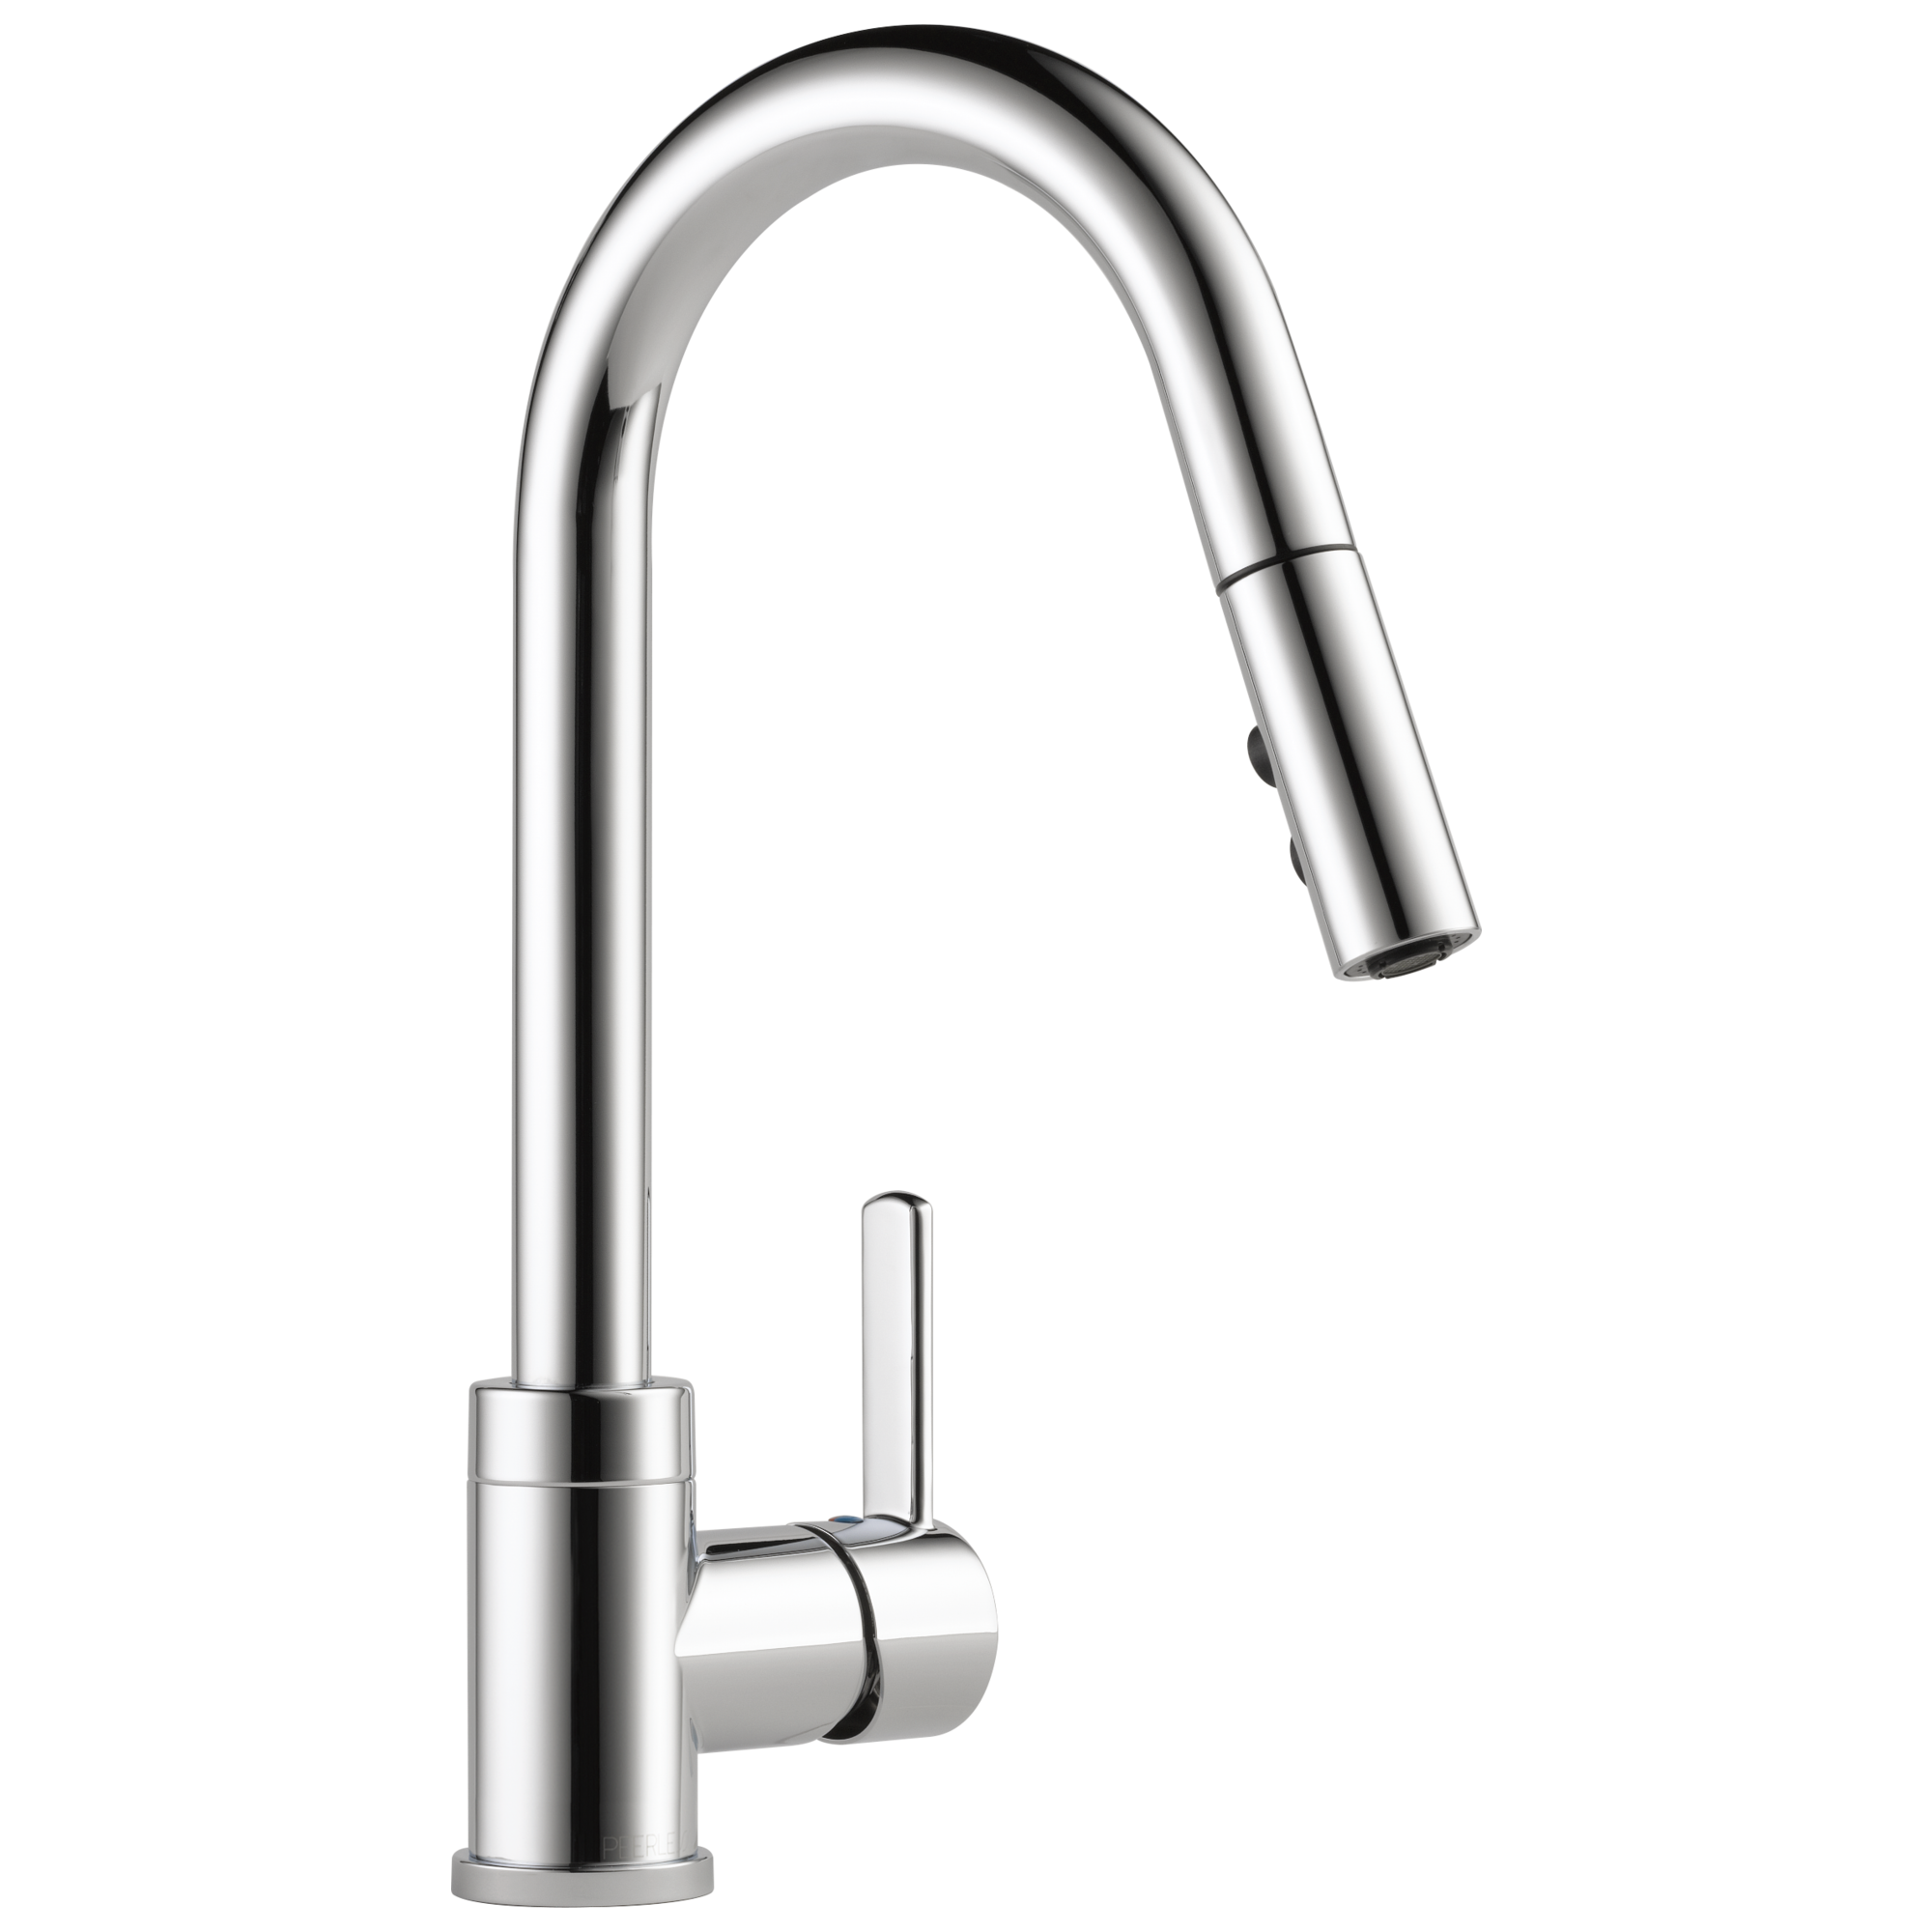 Bath & Shower Kohler Faucets Kitchen Moen Faucet